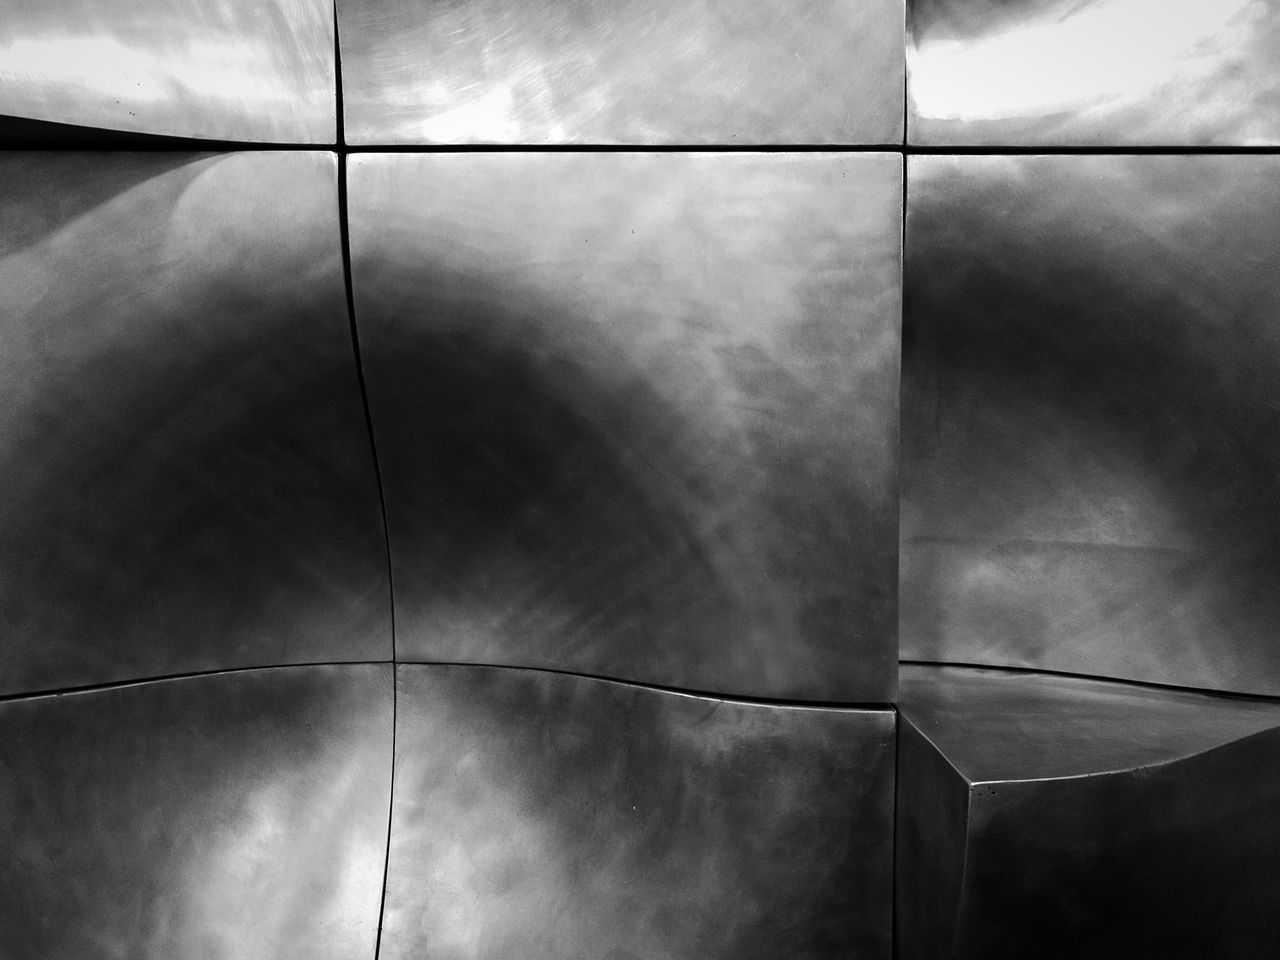 Stationtwentyone Indoors  Backgrounds HuaweiP9 Huaweiphotography Hospital Life Architecture Built Structure Therapy For The Soul Architectural Detail Architectural Feature Pattern Blackandwhite Photography Berlin Black & White Schwarzweiß Berlin Monochrome Monochrome